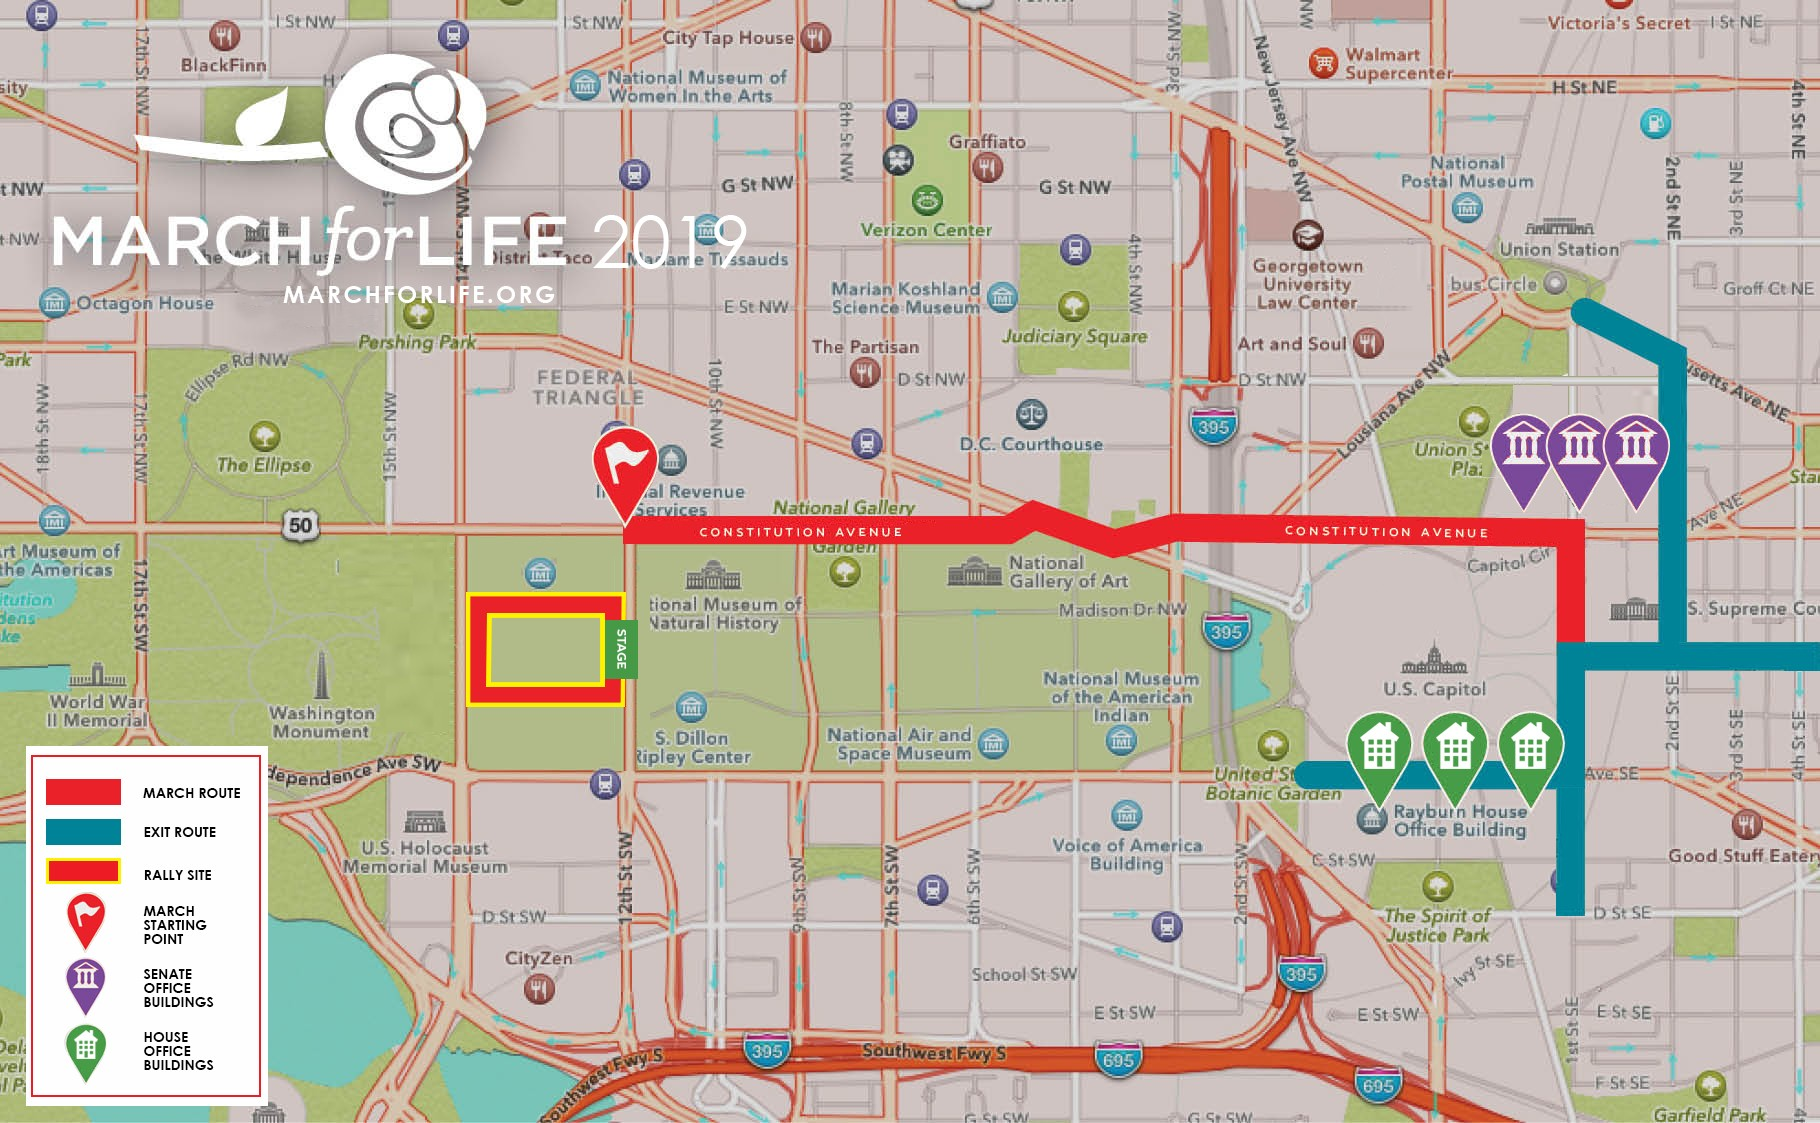 the March for Life app